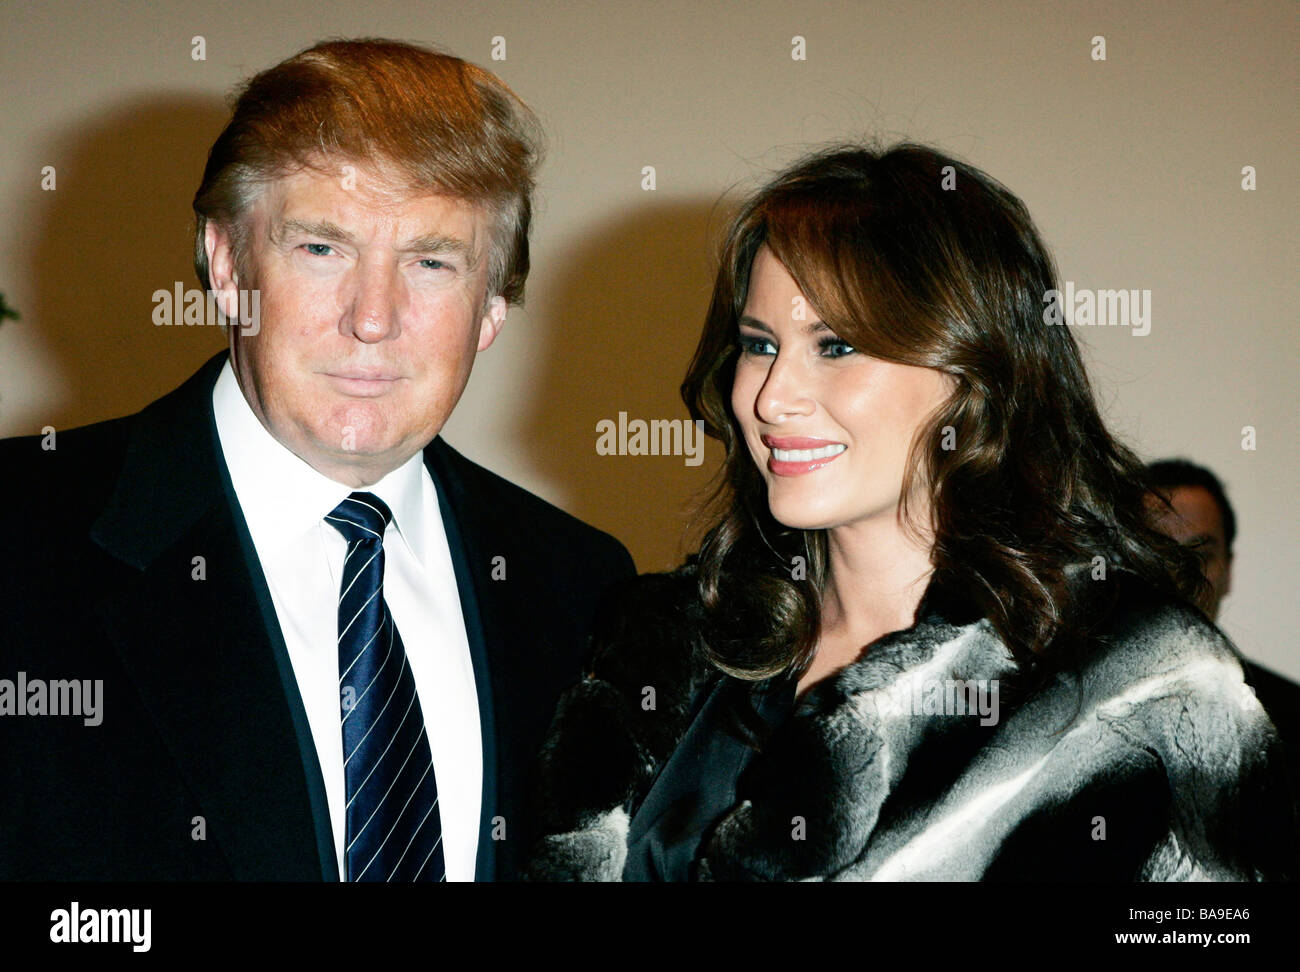 Donald Trump and his wife Melania Knauss in America at the Museum of Modern Art MOMA reception in New York - Stock Image